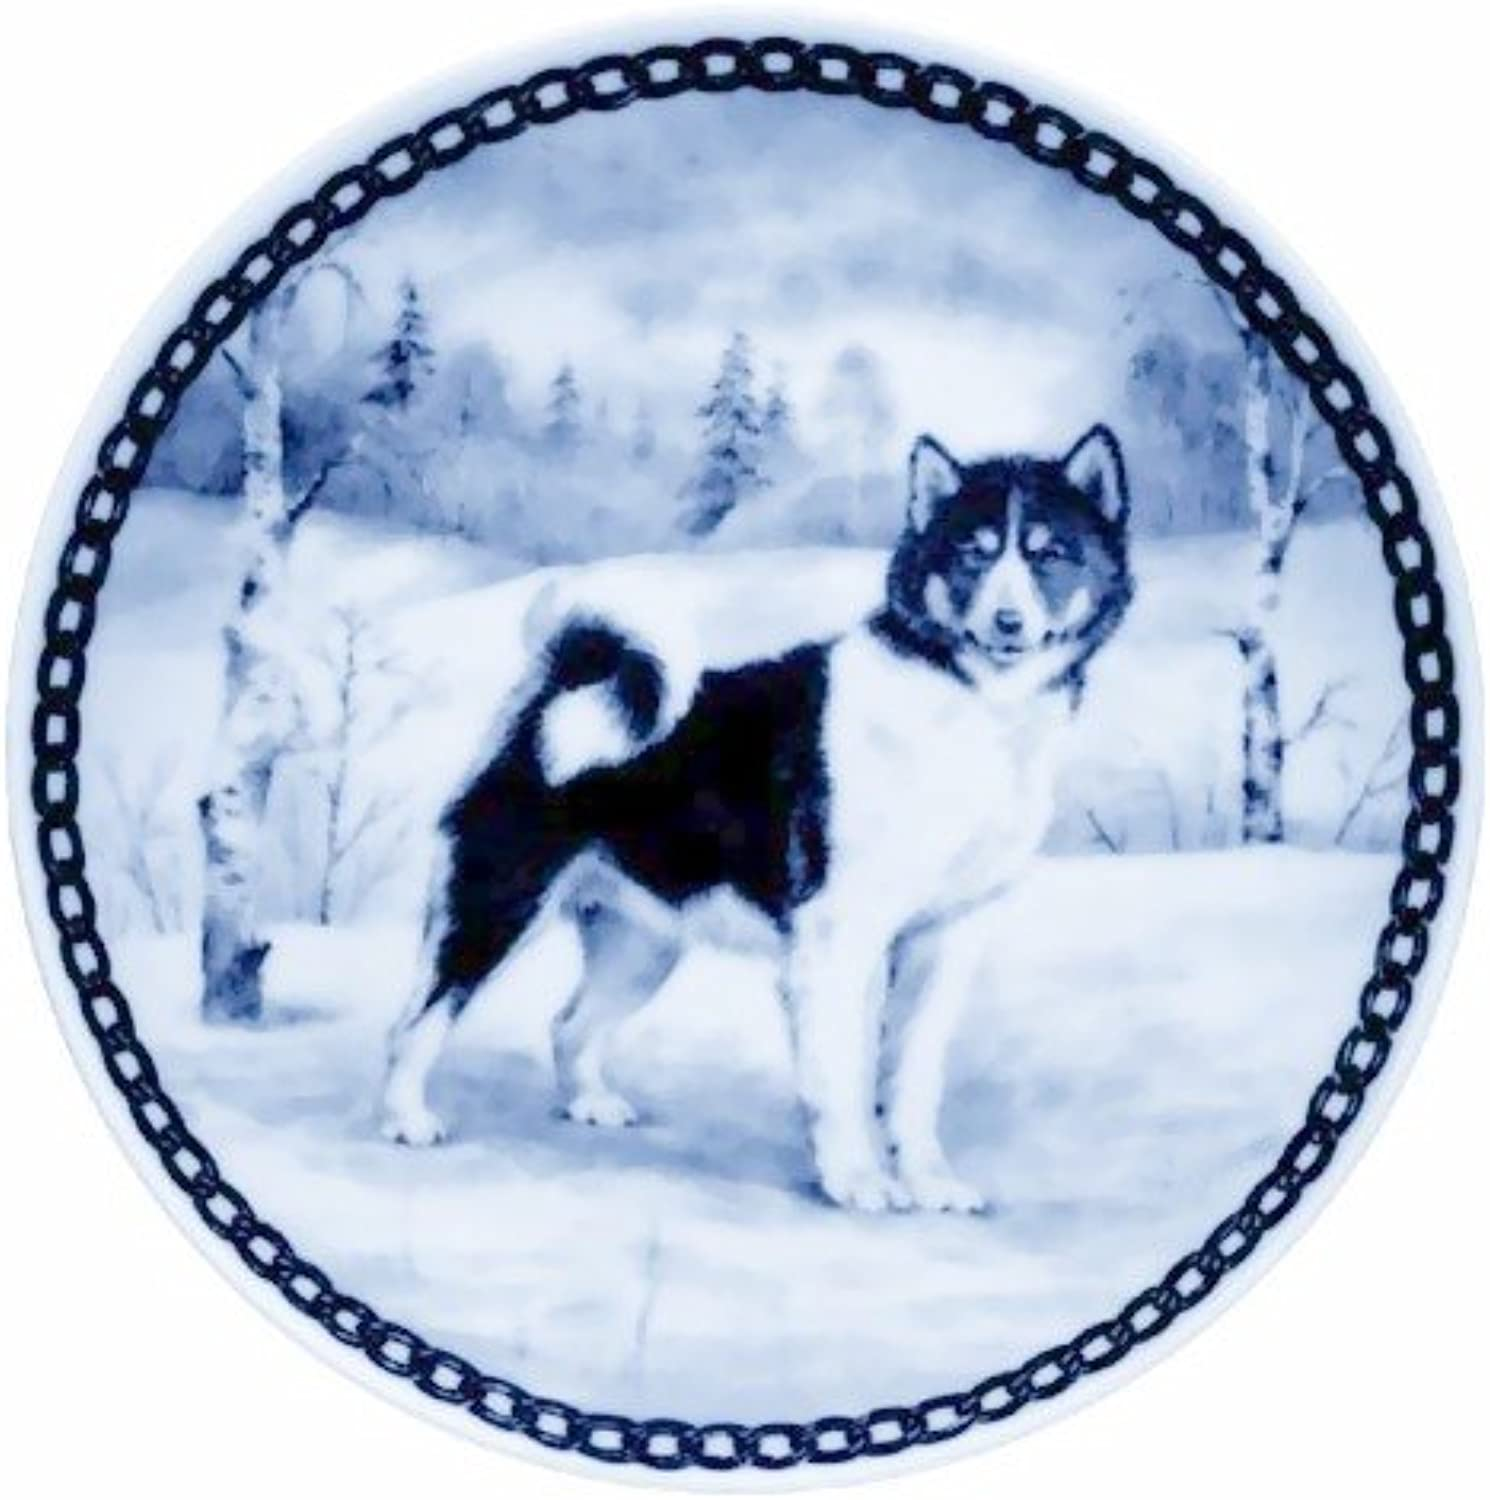 Canadian Eskimo Dog   Lekven Design Dog Plate 19.5 cm  7.61 inches Made in Denmark NEW with certificate of origin PLATE  7202